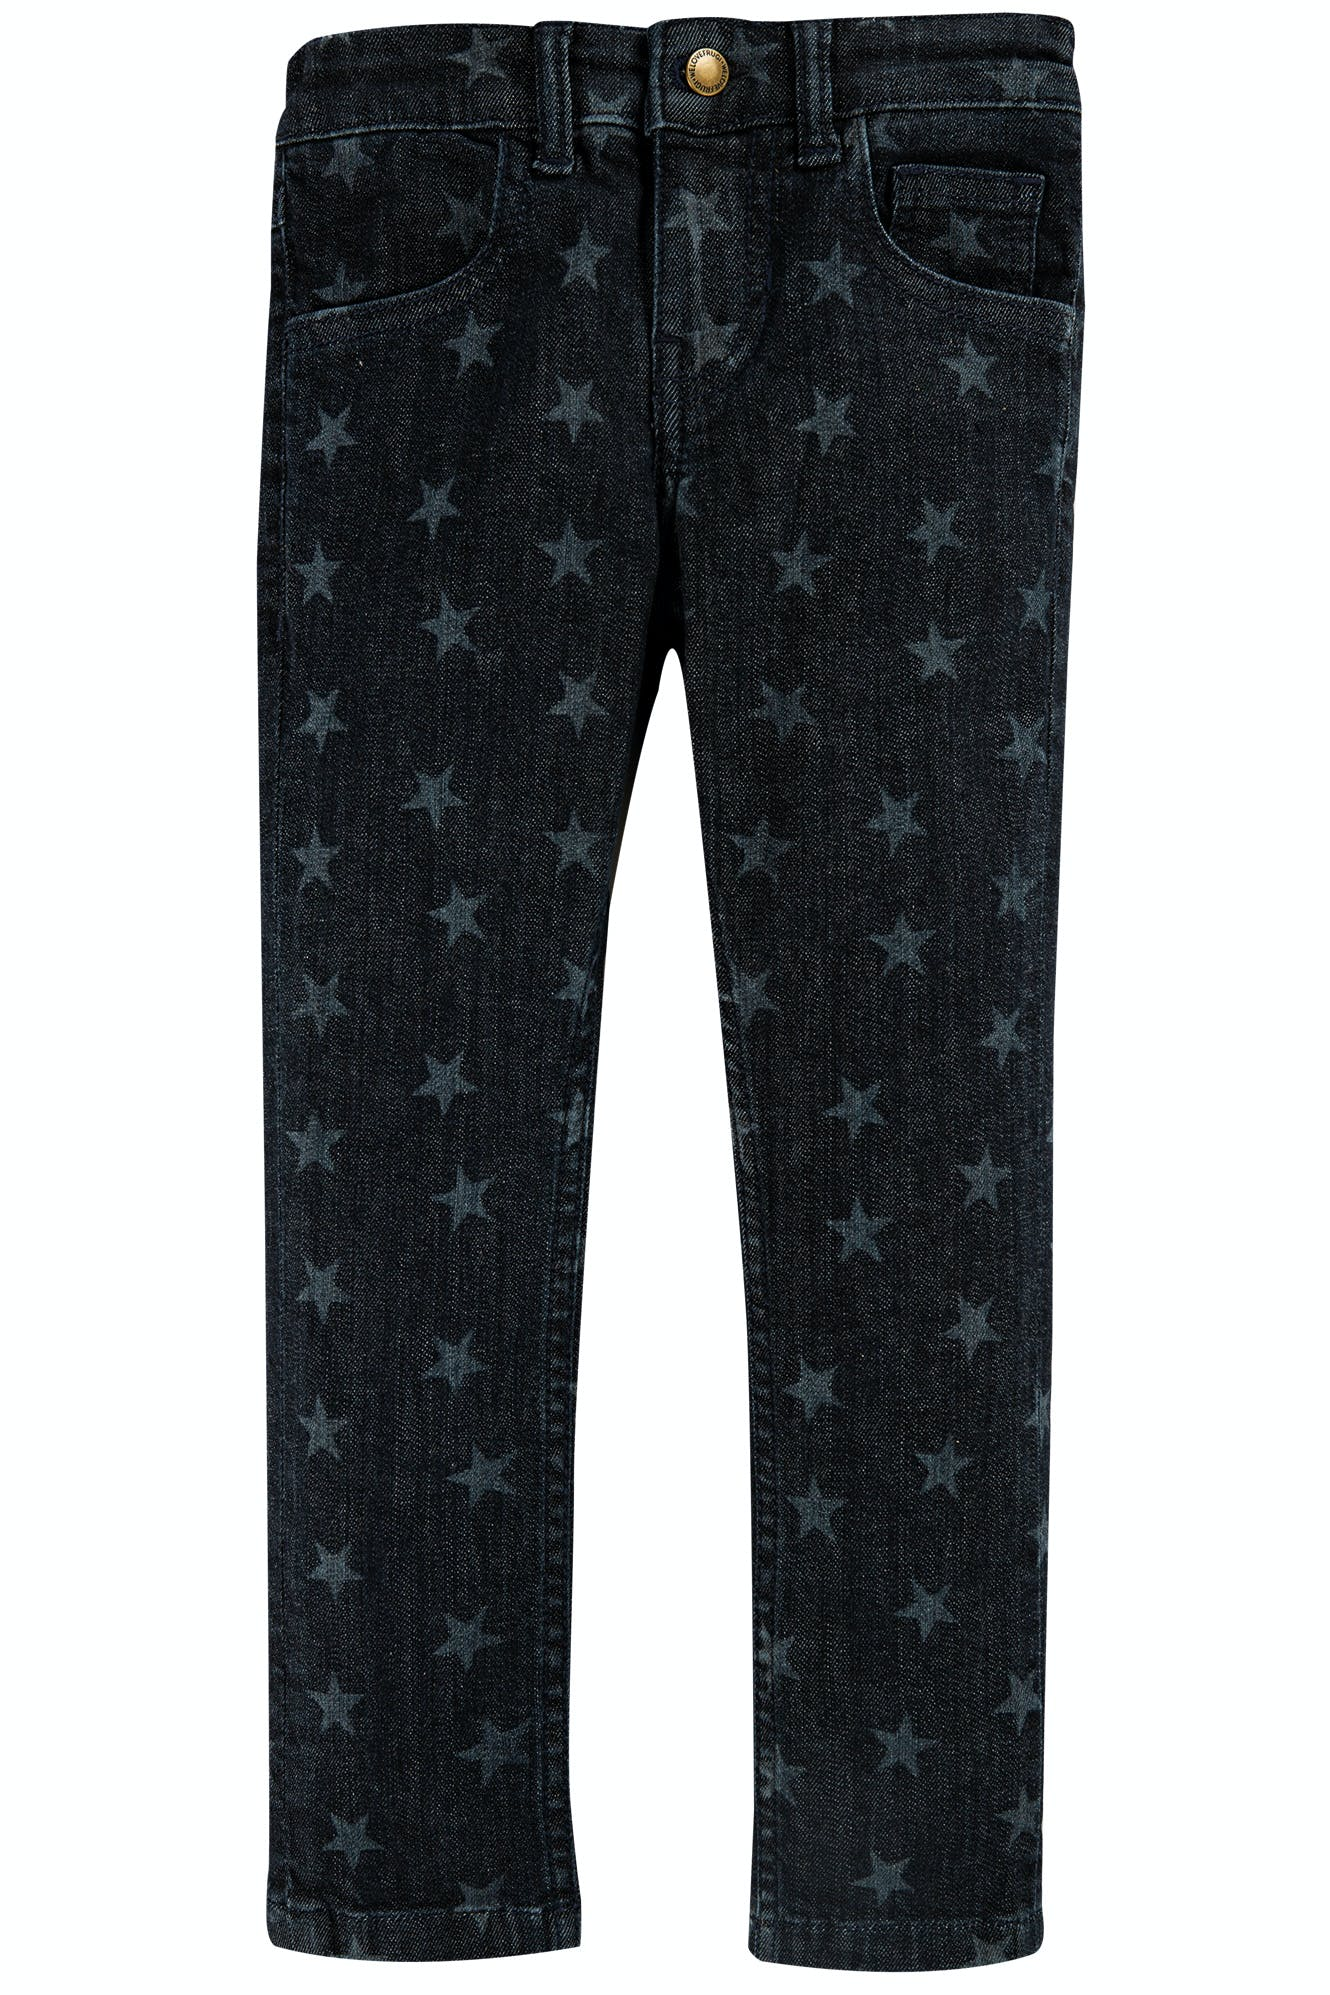 Click to view product details and reviews for Jordan Printed Jeans.